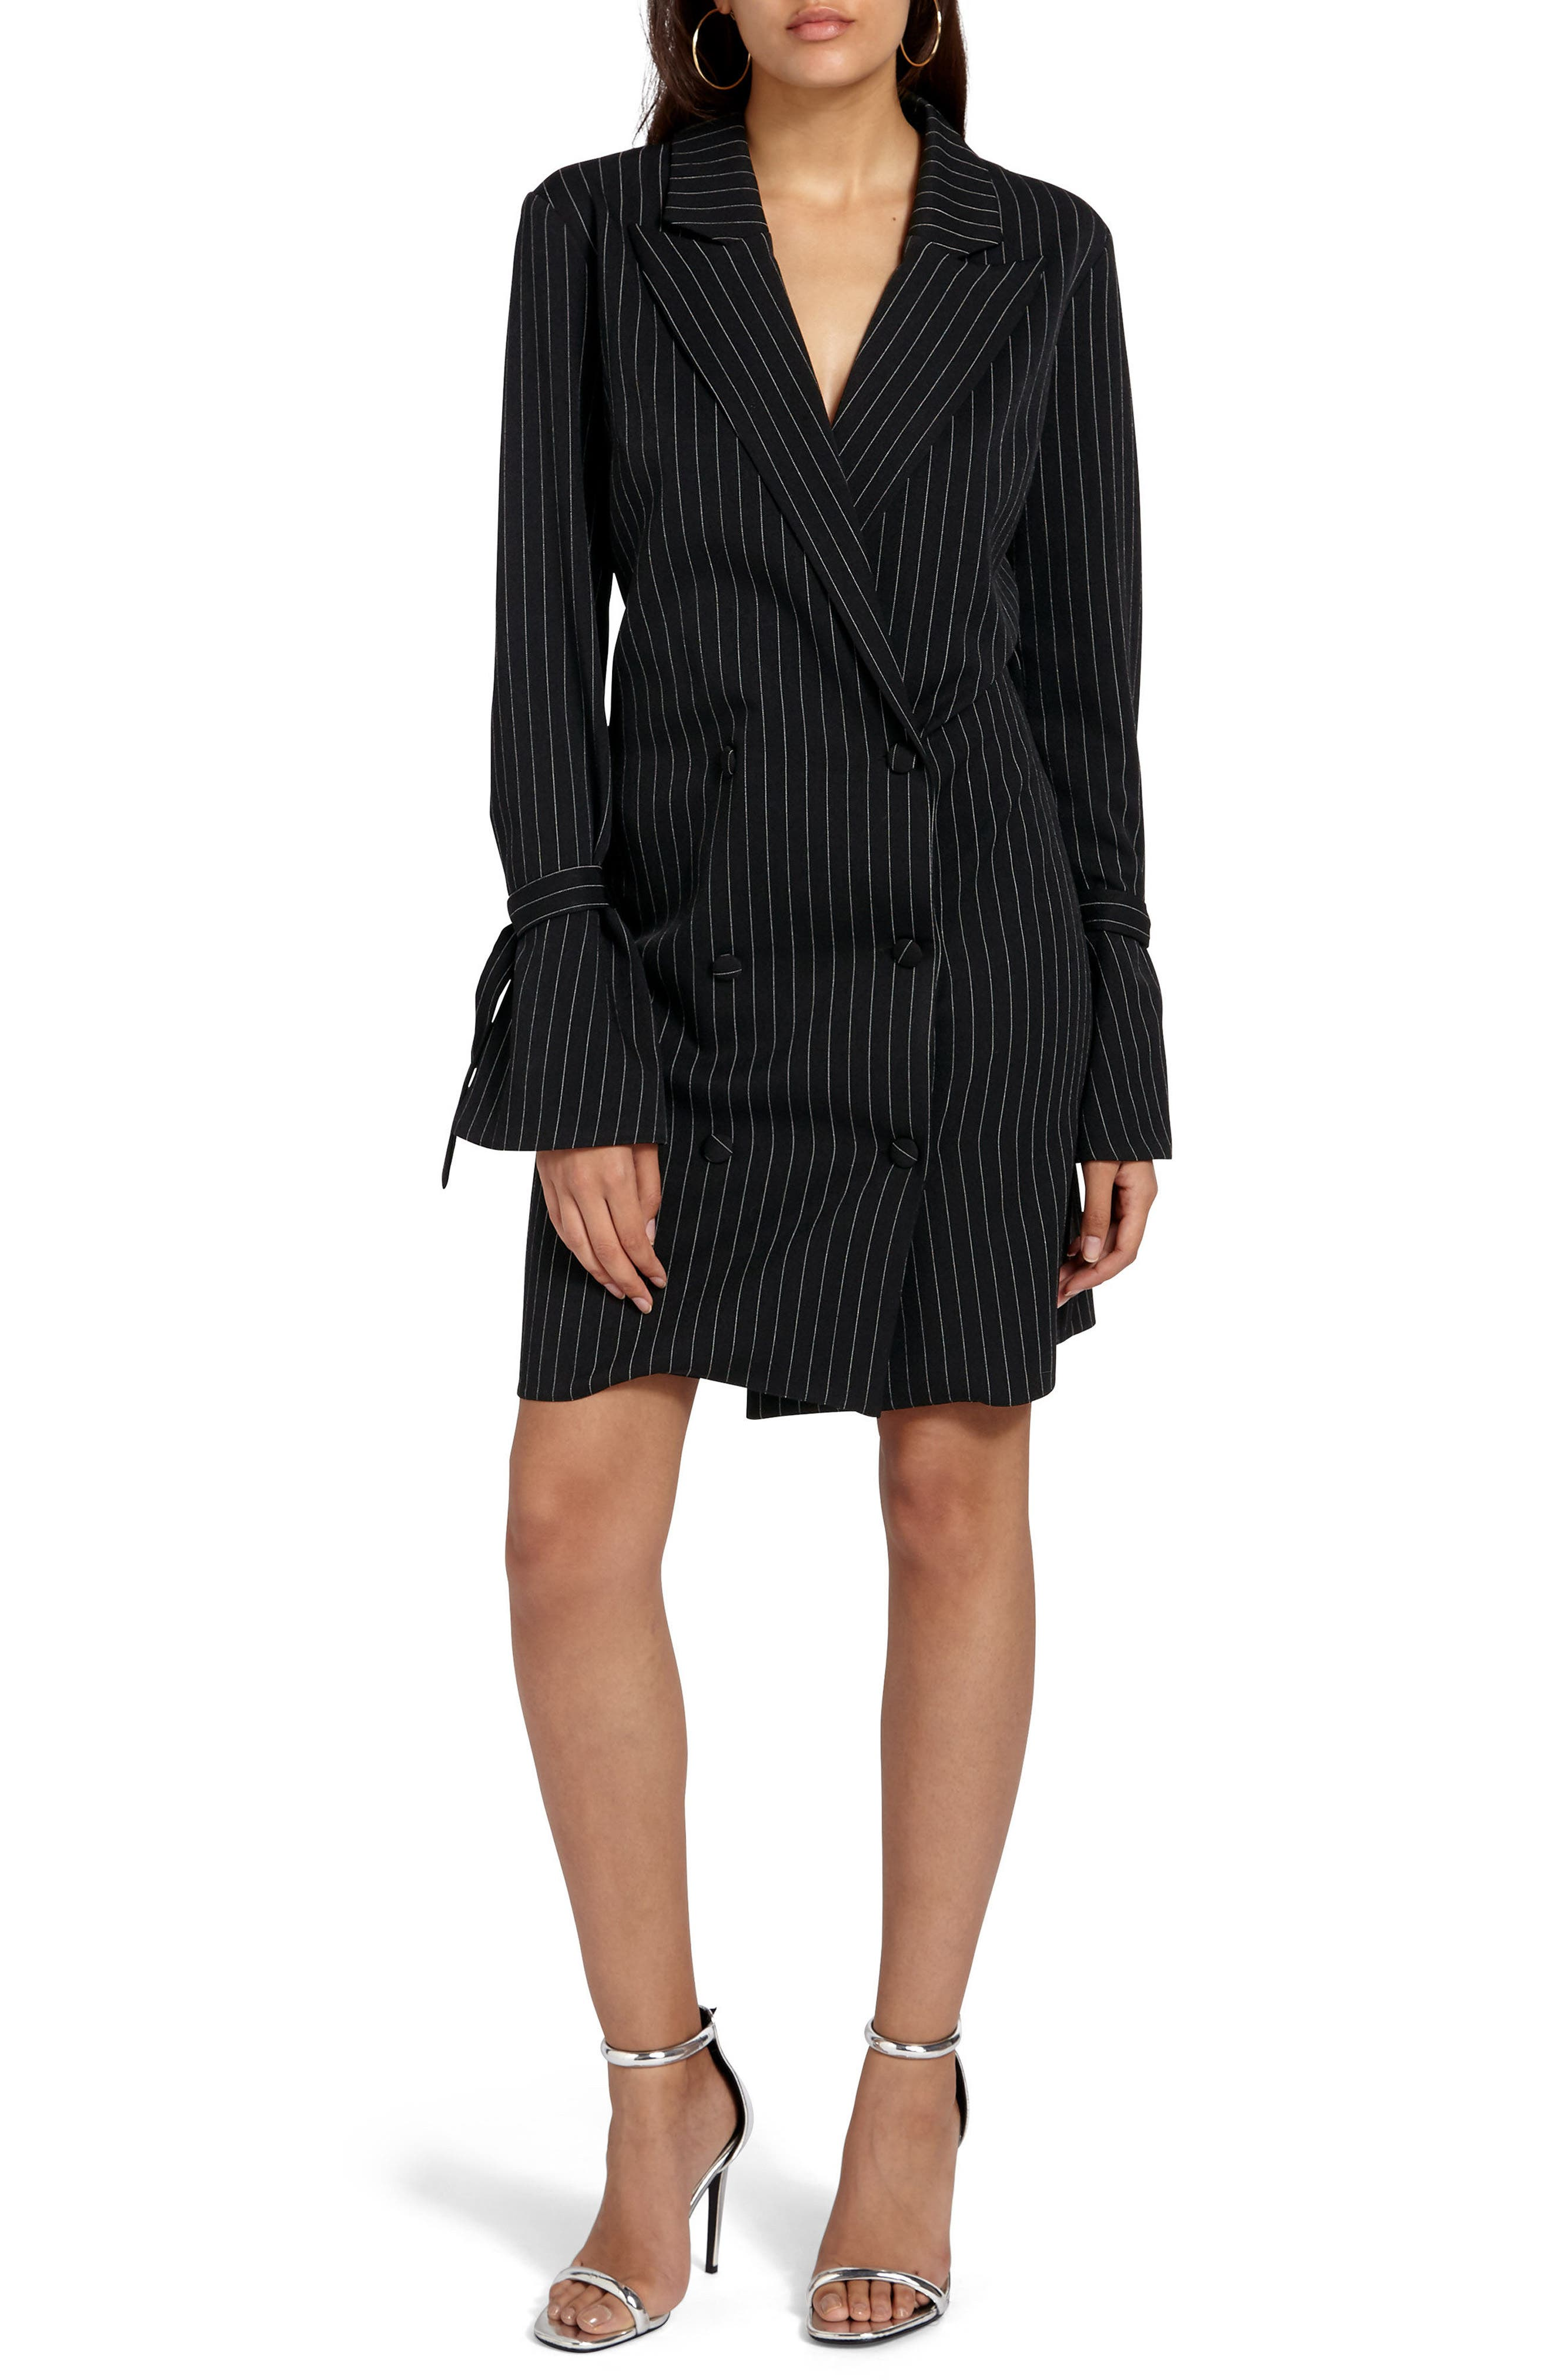 Alternate Image 1 Selected - Missguided Double Breasted Suit Dress